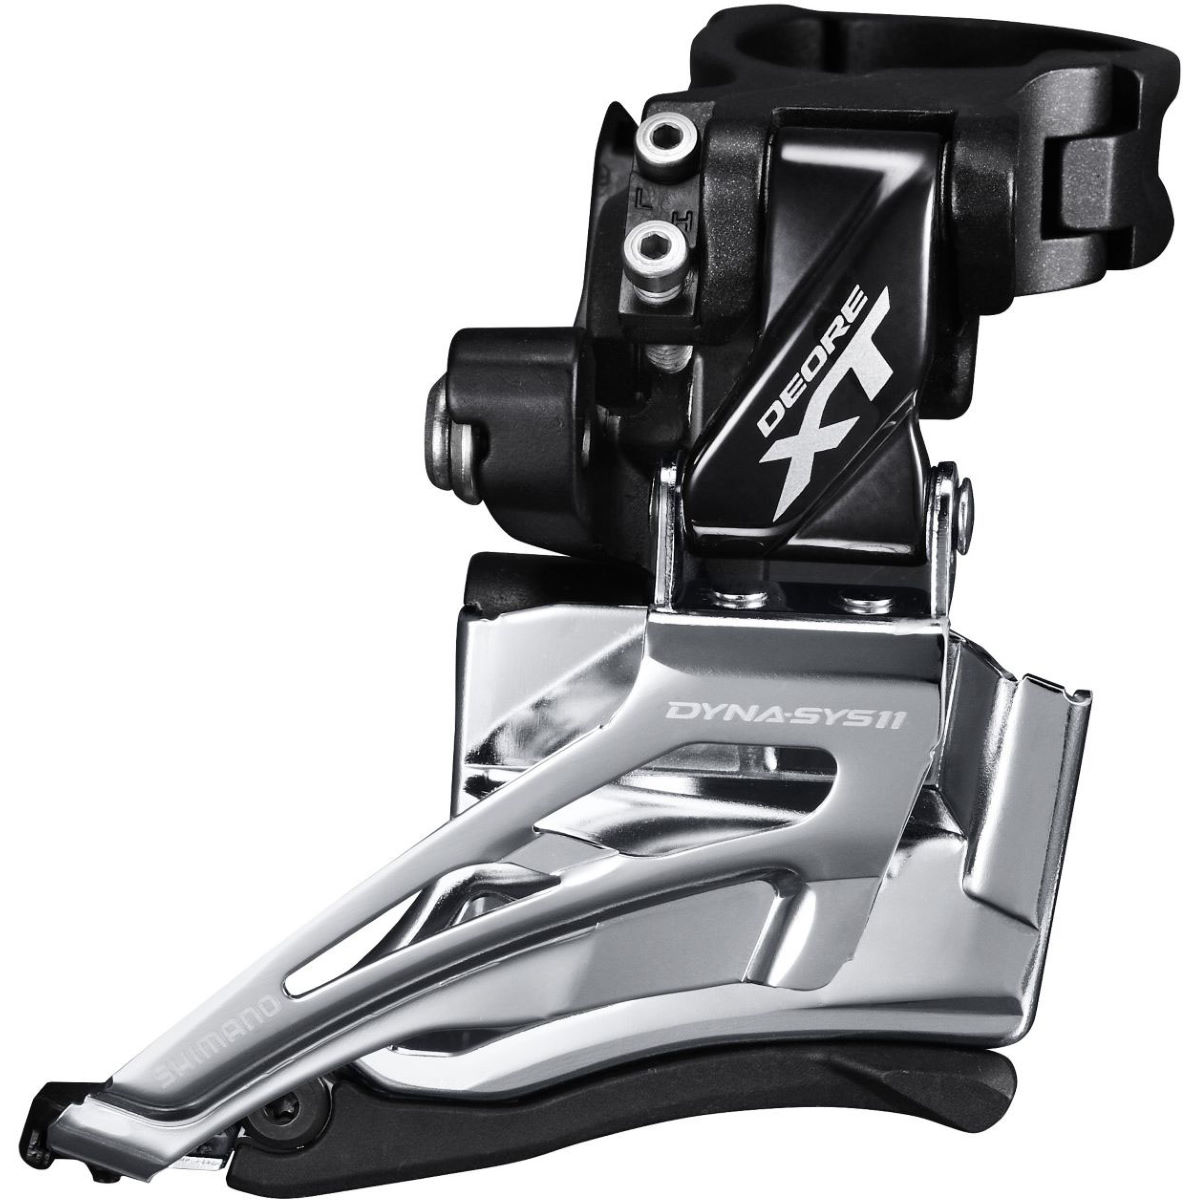 Shimano Deore Xt M8025 Front Derailleur - H - Double-dual Pull Grey